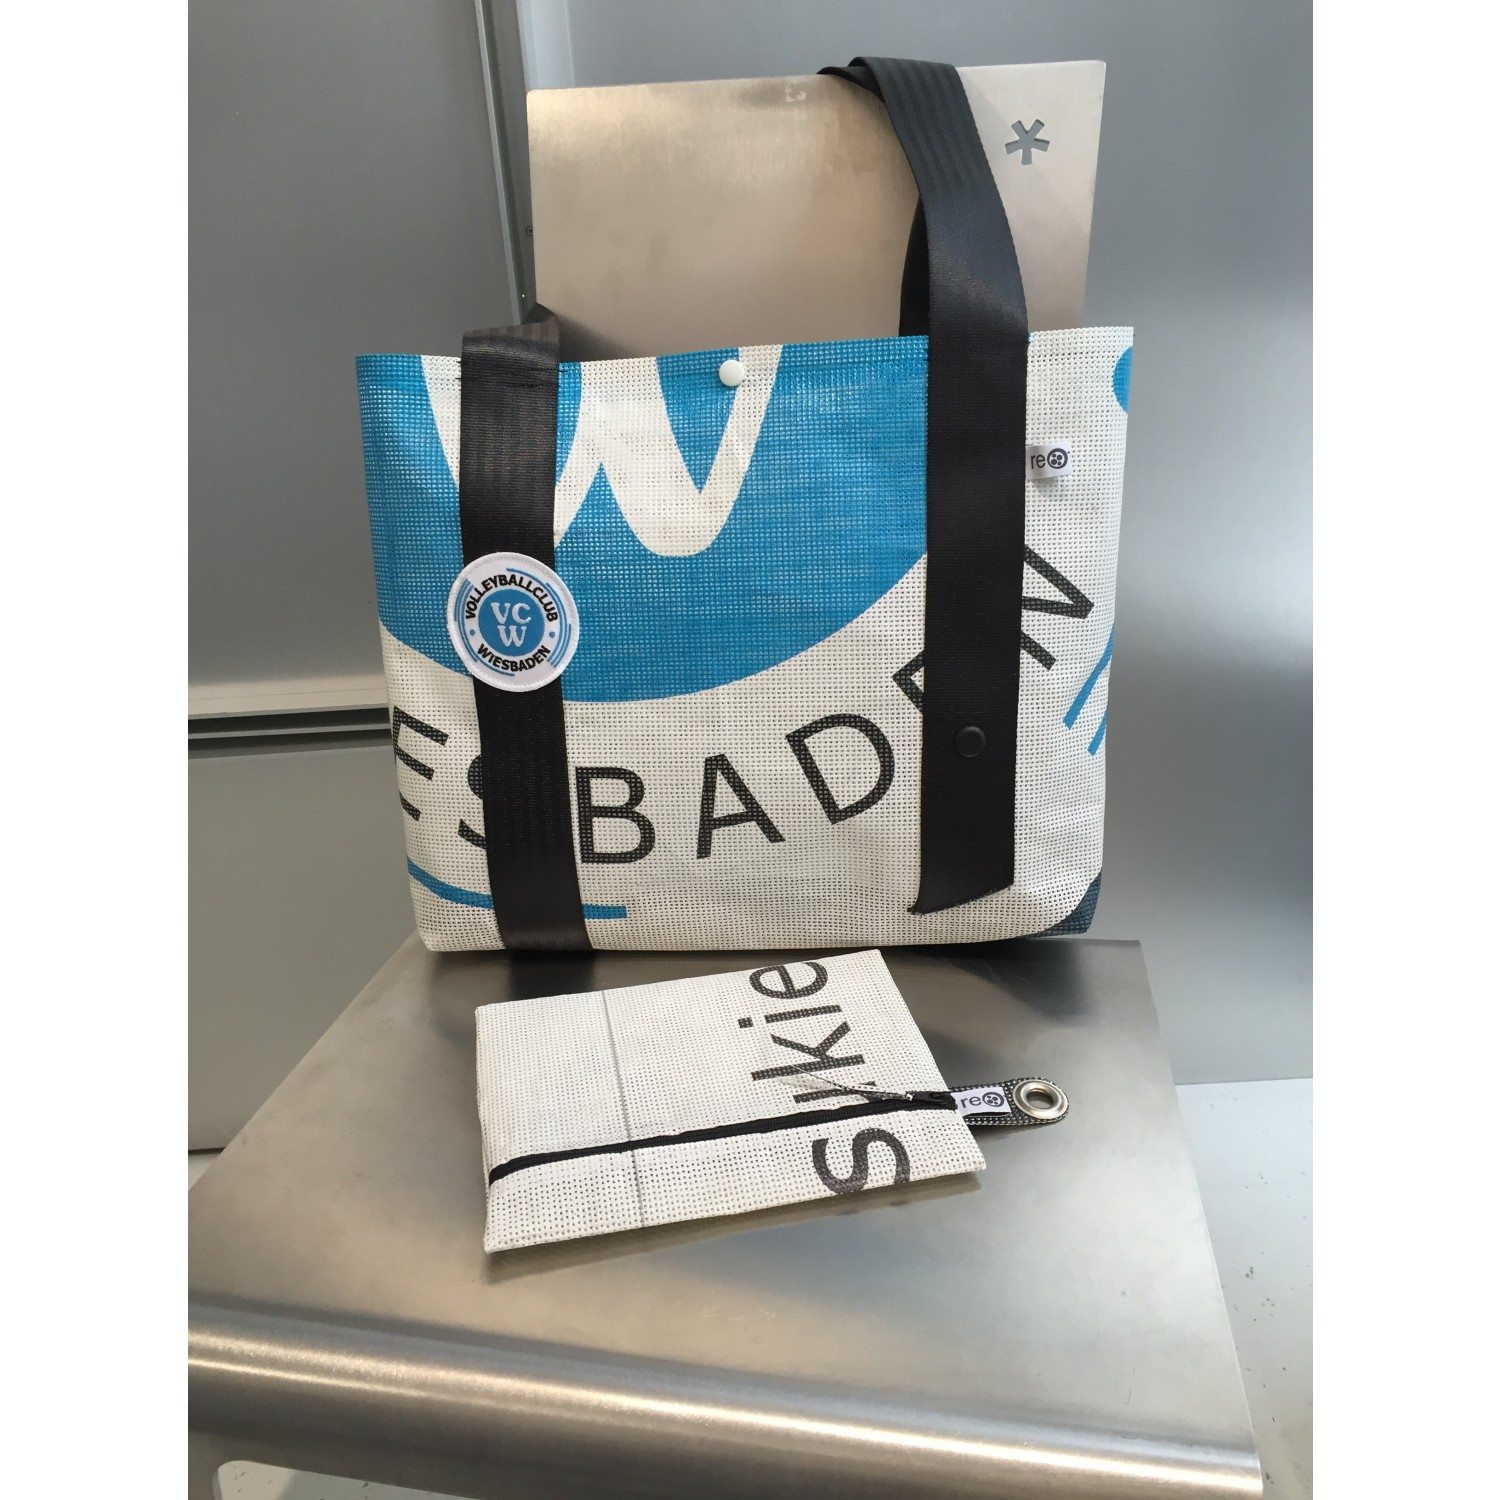 VCW Fanbag - upcycled bag of recycled banners | rething